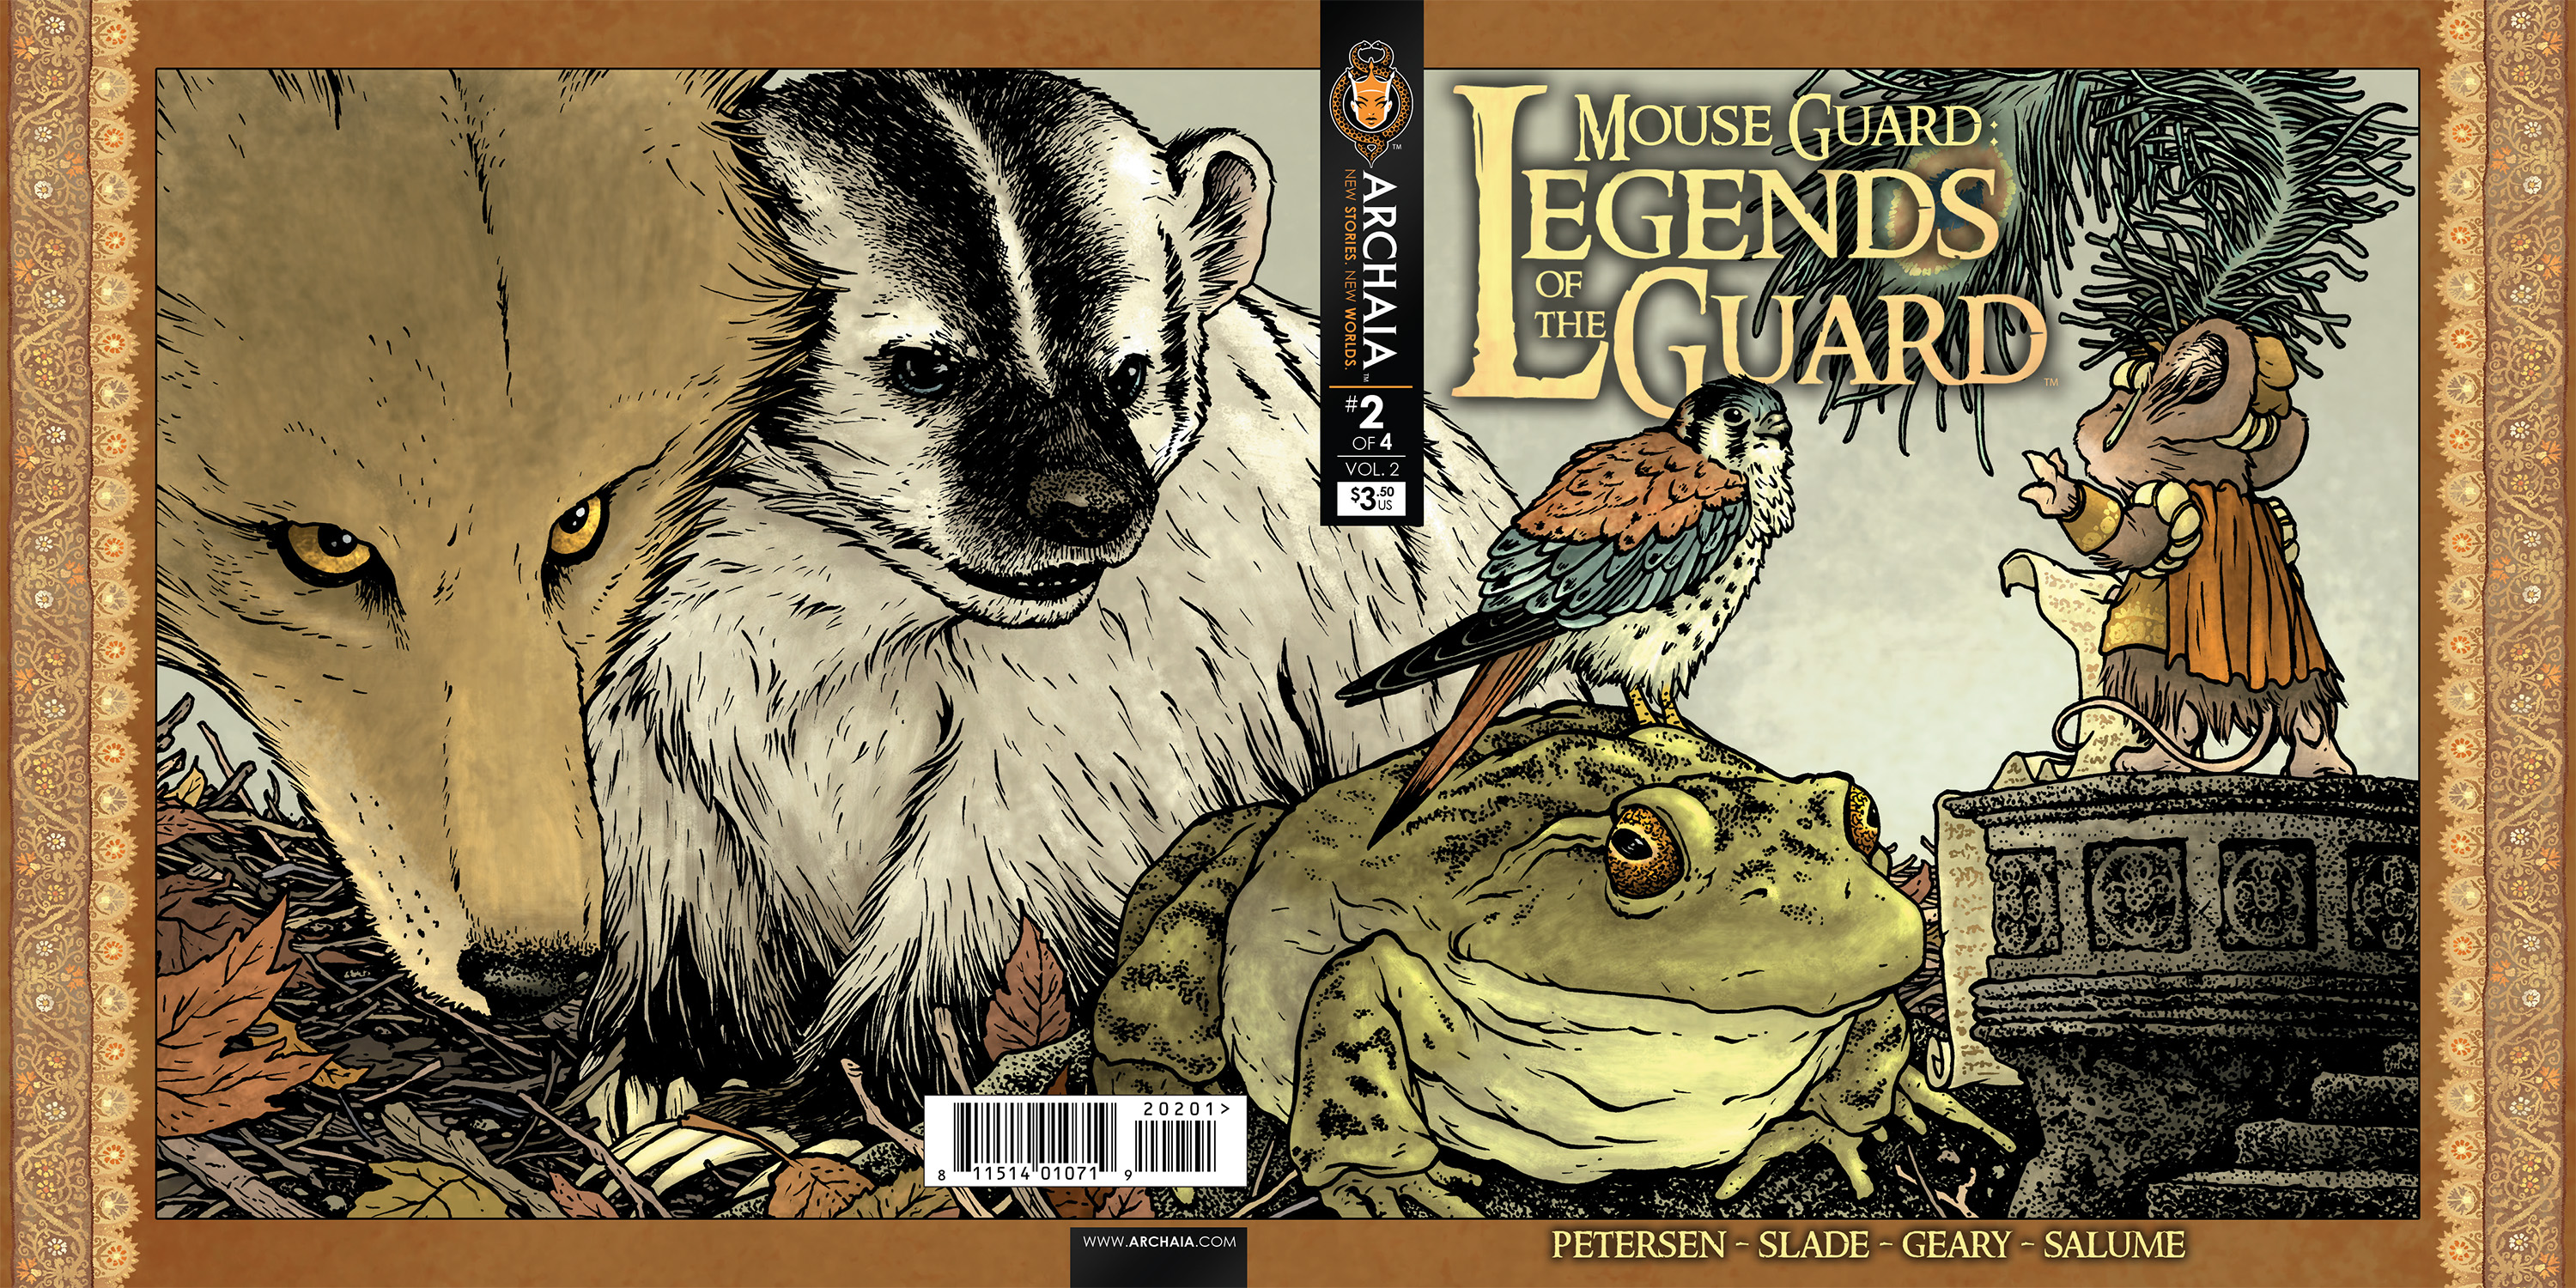 mouse-guard-legends-of-the-guard-v2-002-cover-wrap